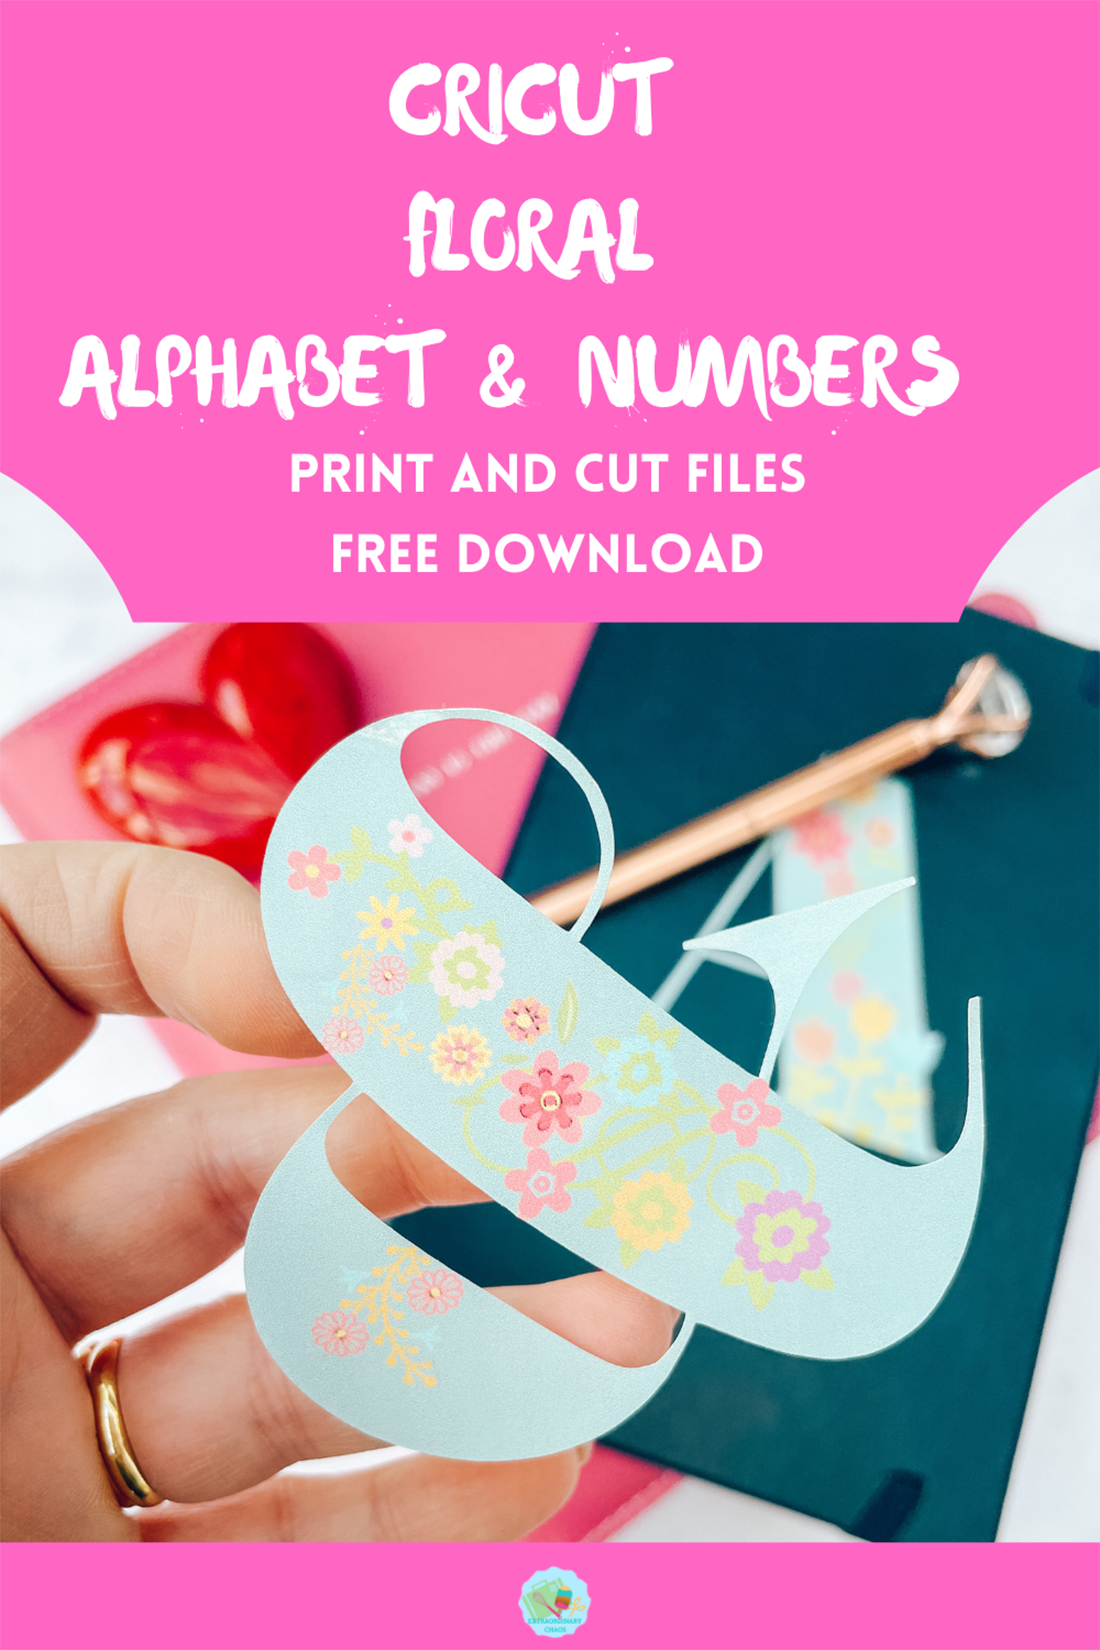 Free download for a Cricut Flowery Alphabet and numbers for Crafting and scrapbooking